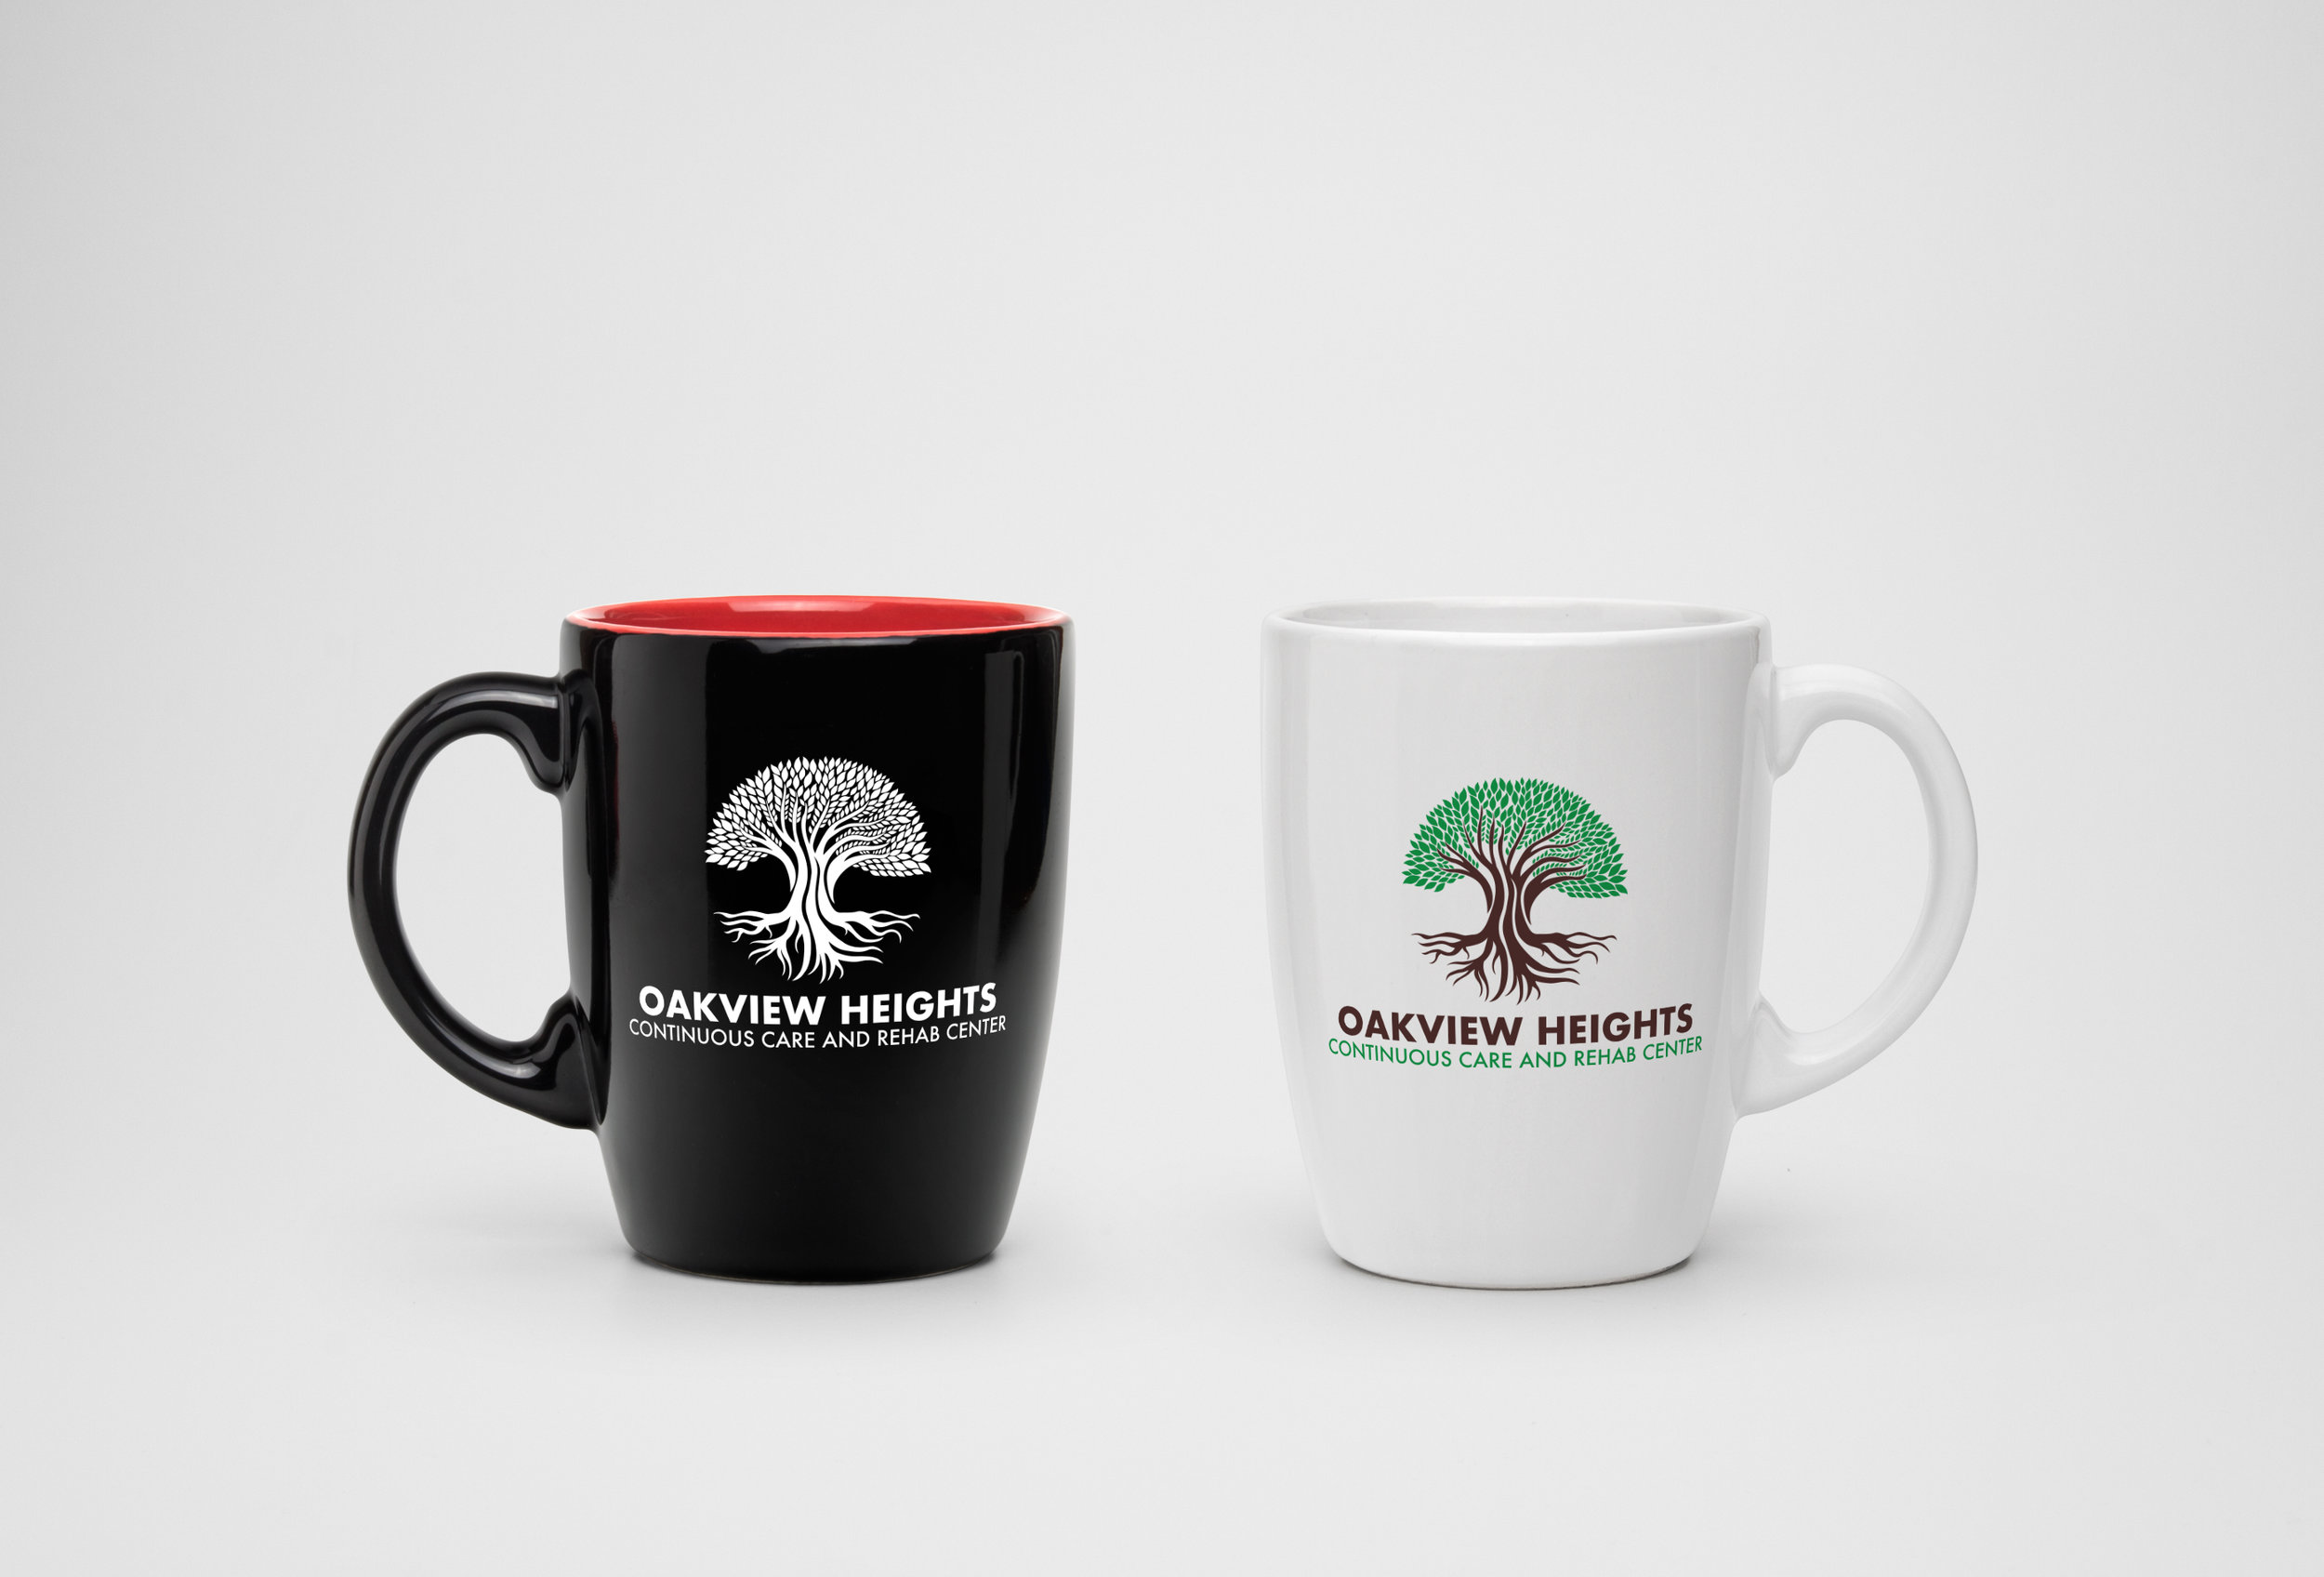 Oakview Heights Mug PSD MockUp 2.jpg